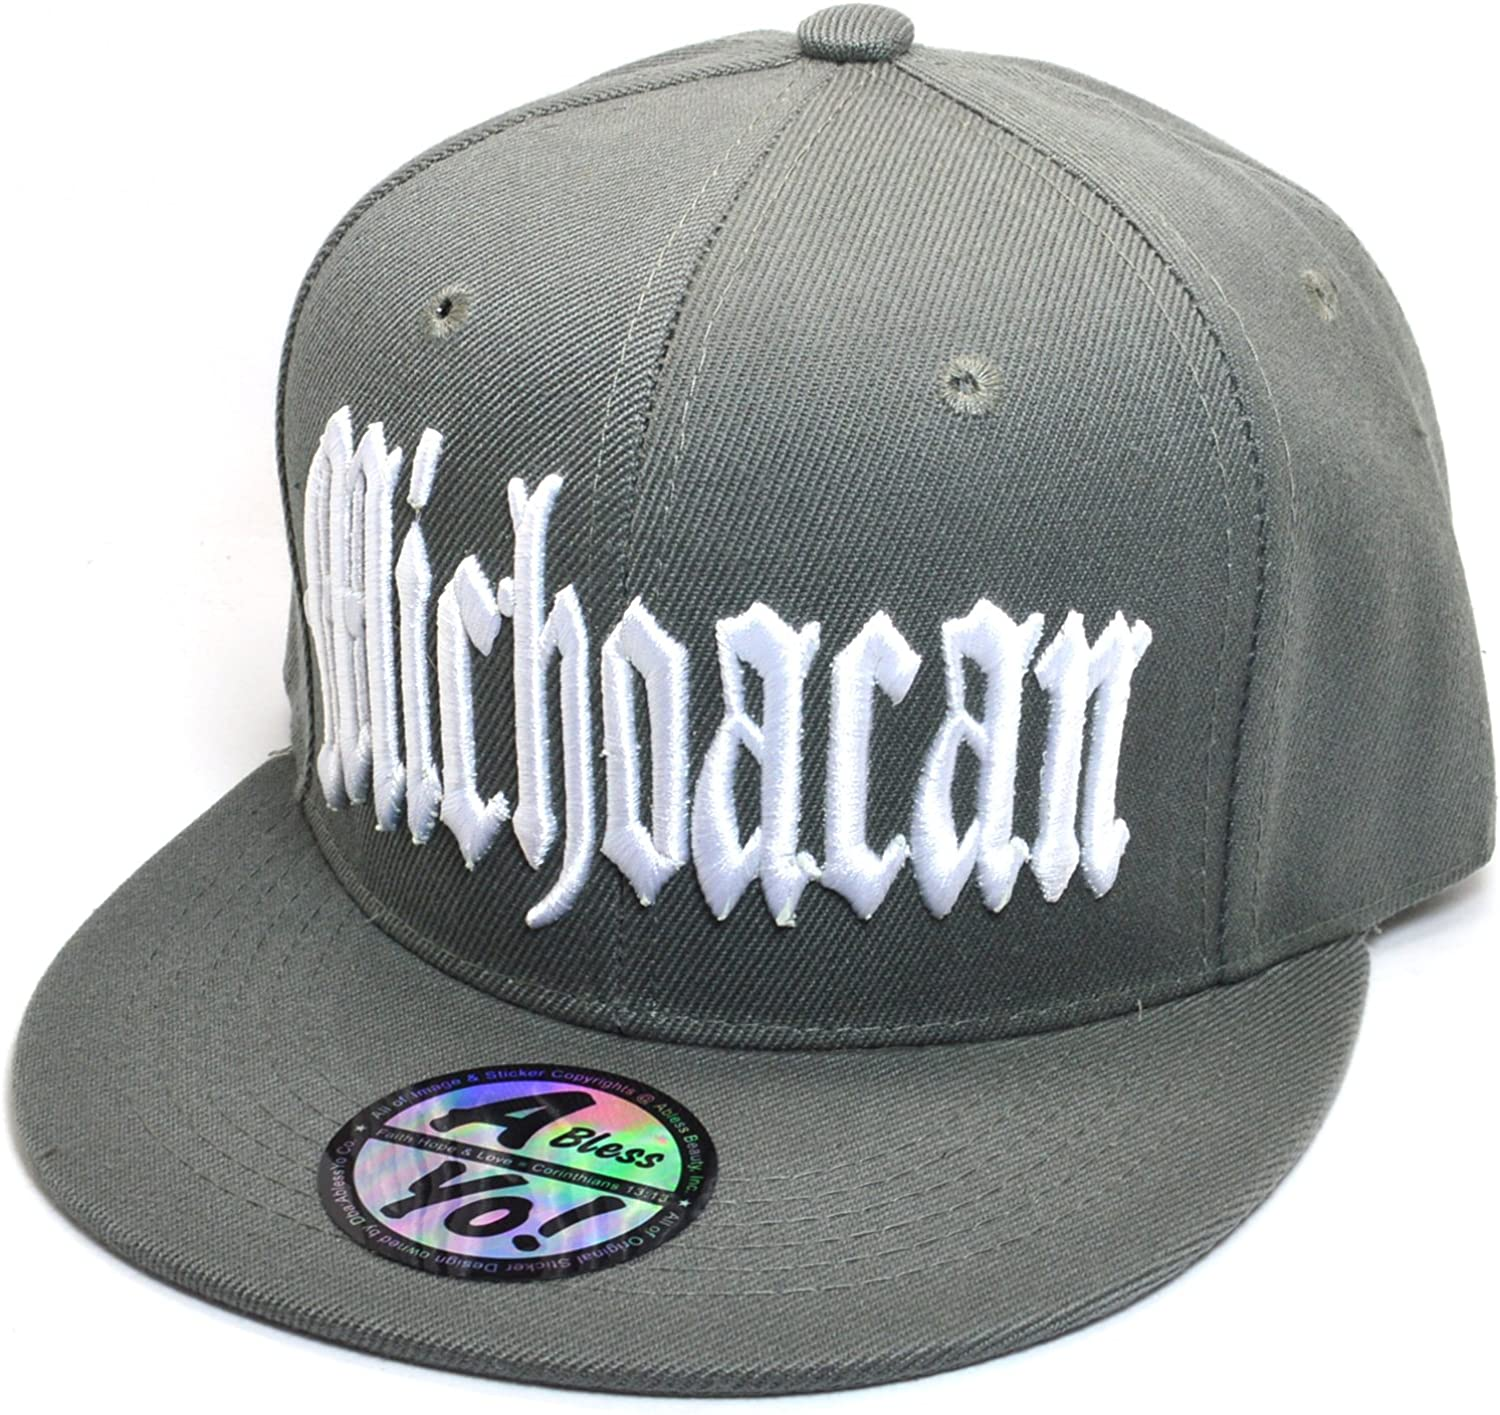 AblessYo Michoacan Mexico City Fitted Hat Closed Back Flat Bill Snapback Cap AYO4314